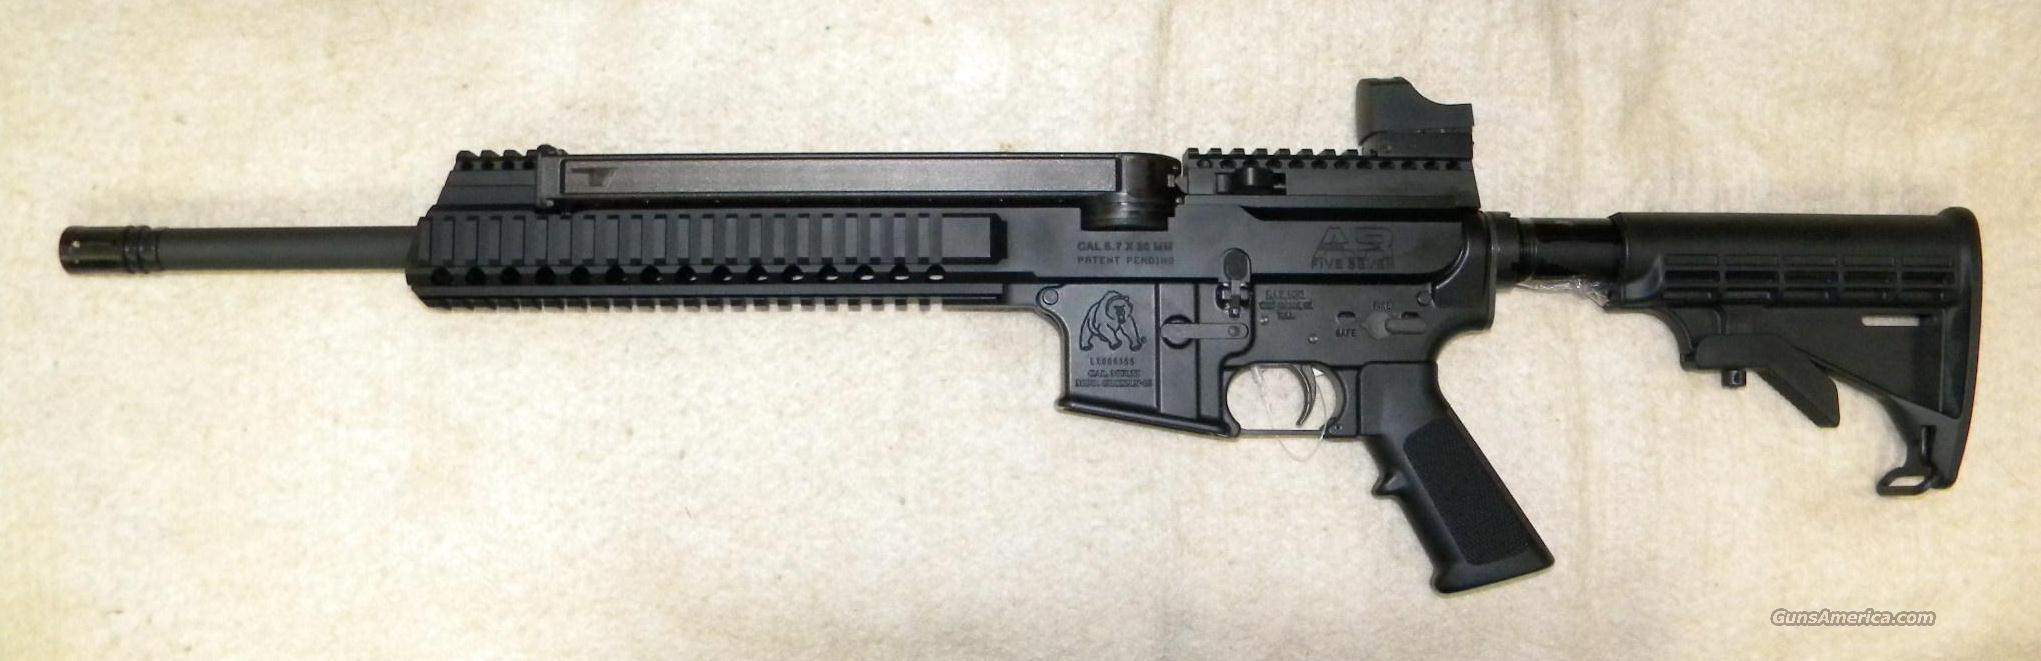 AR Five Seven Upper 5.7x28 with FA Bolt! SOLD - Page 1 - AR15.COM